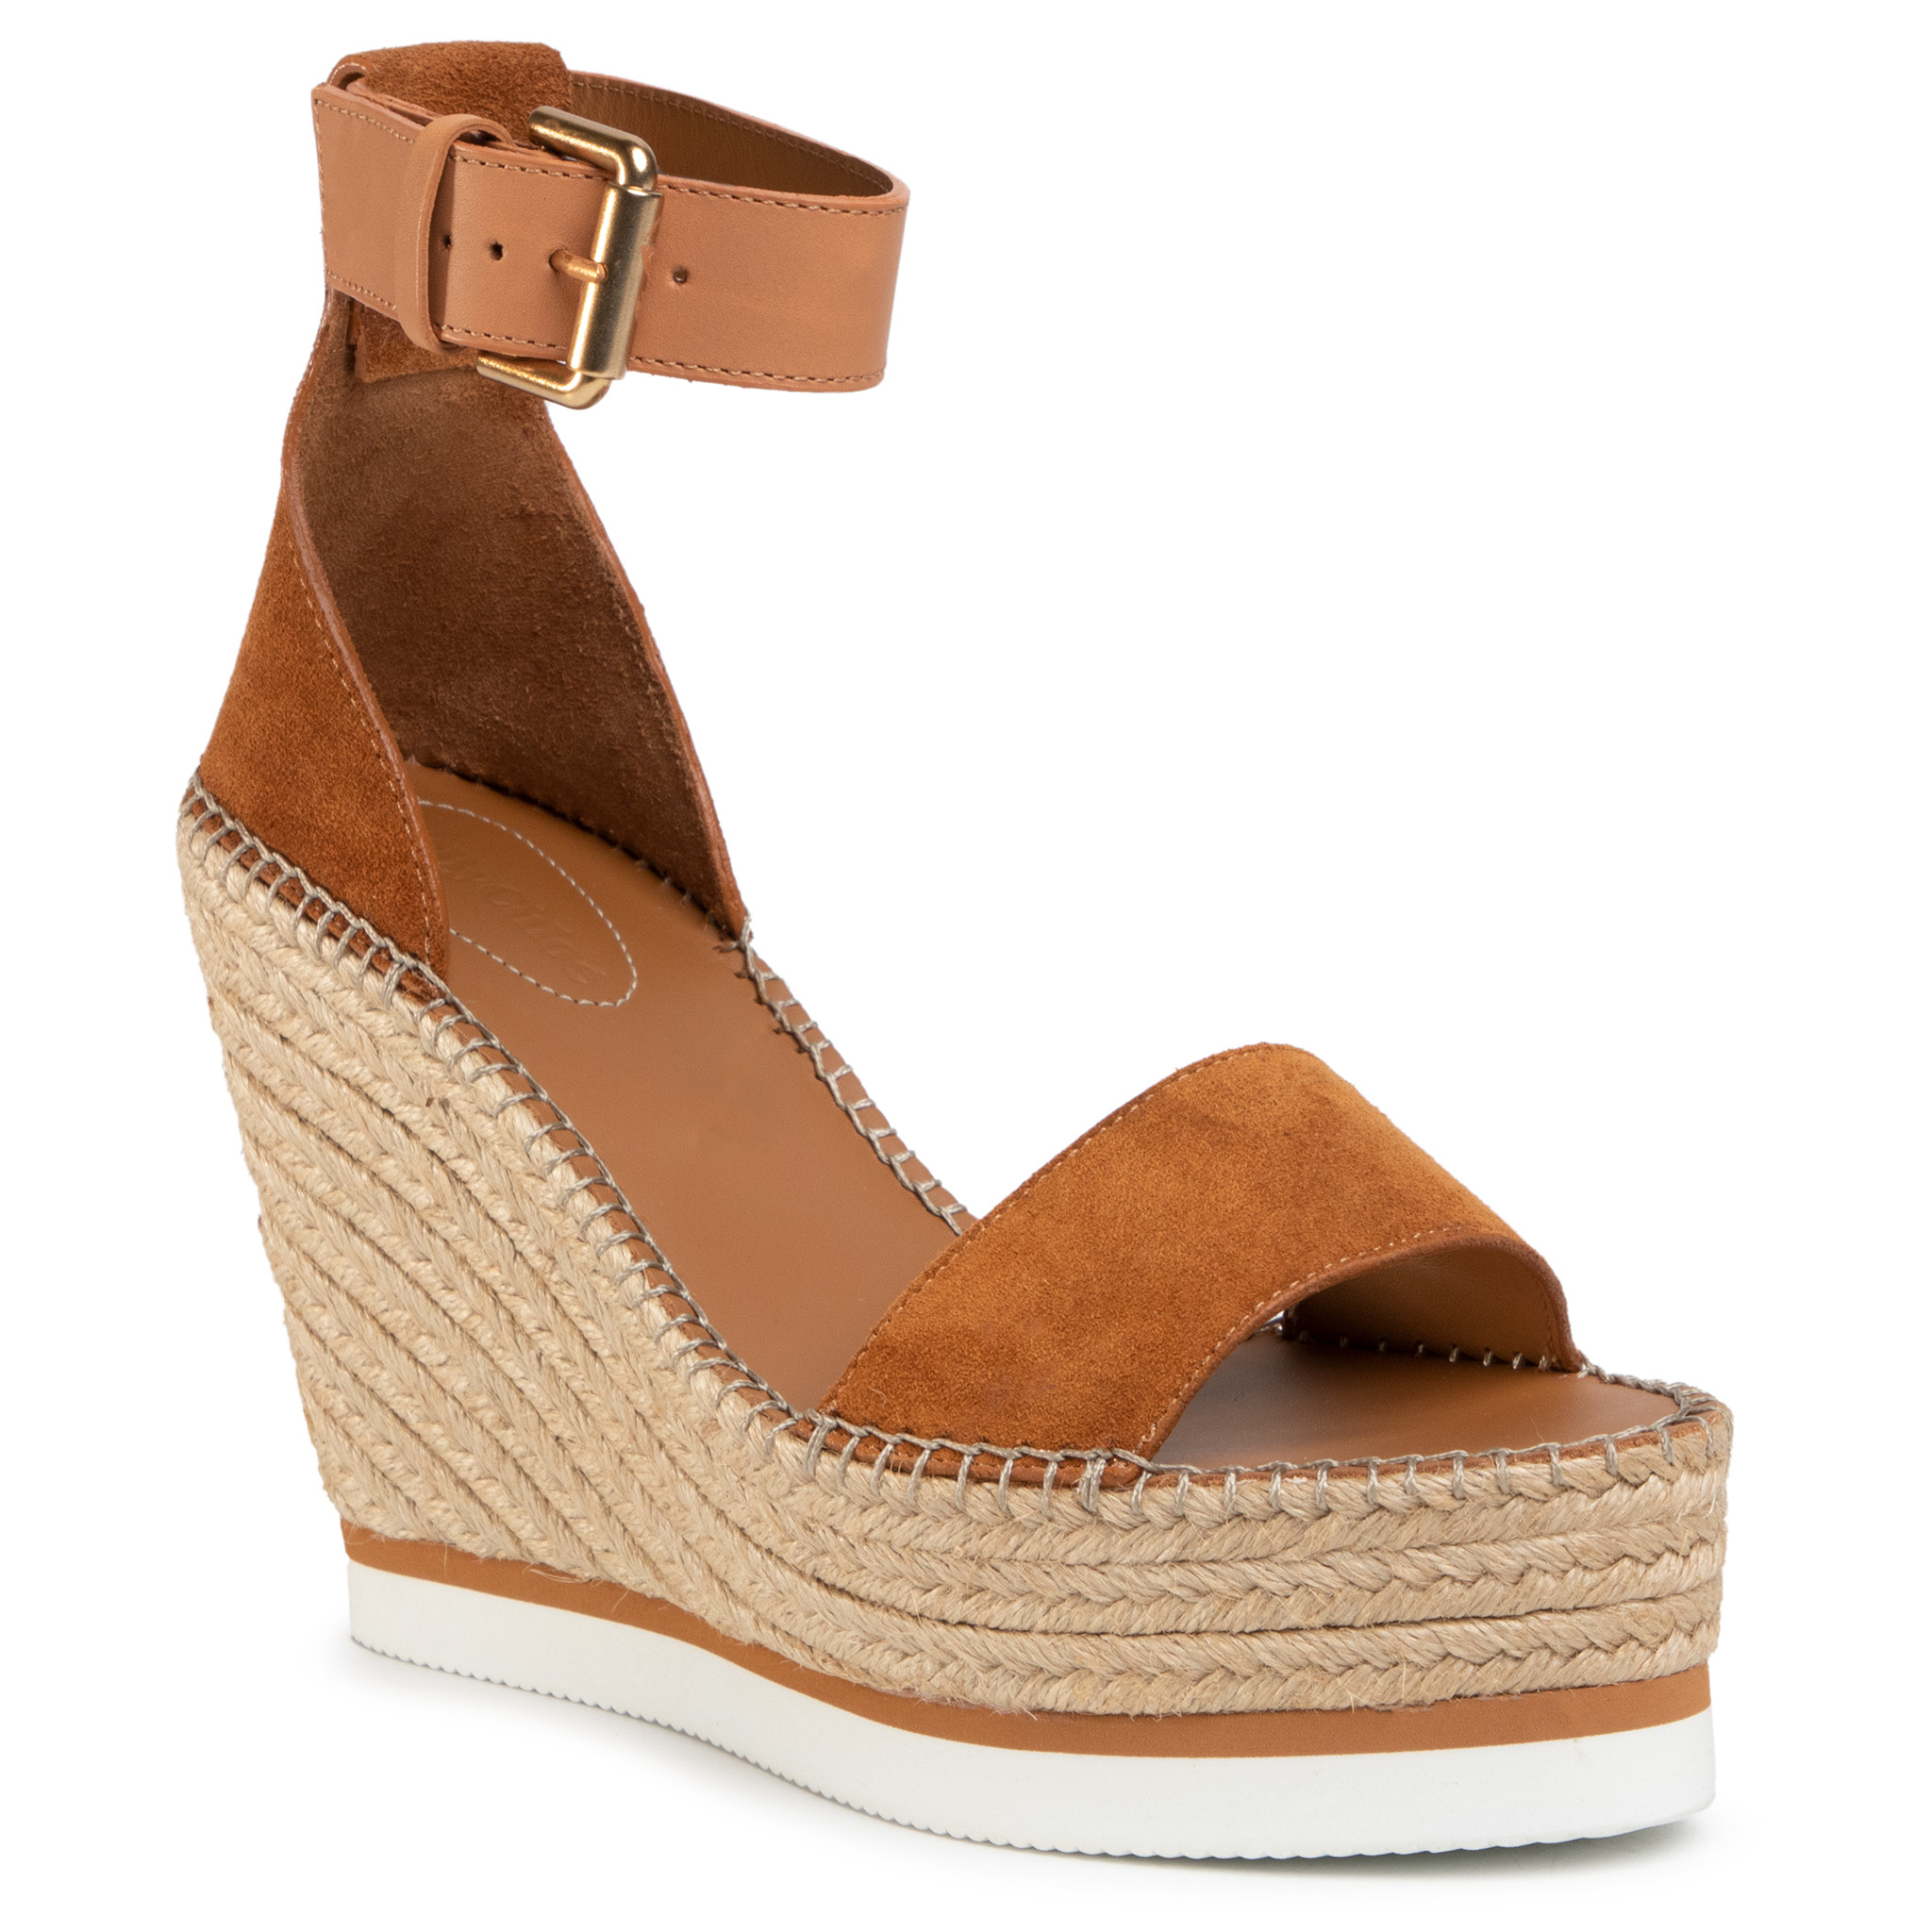 Image of Espadrillas SEE BY CHLOÉ - SB26152 Crosta 581